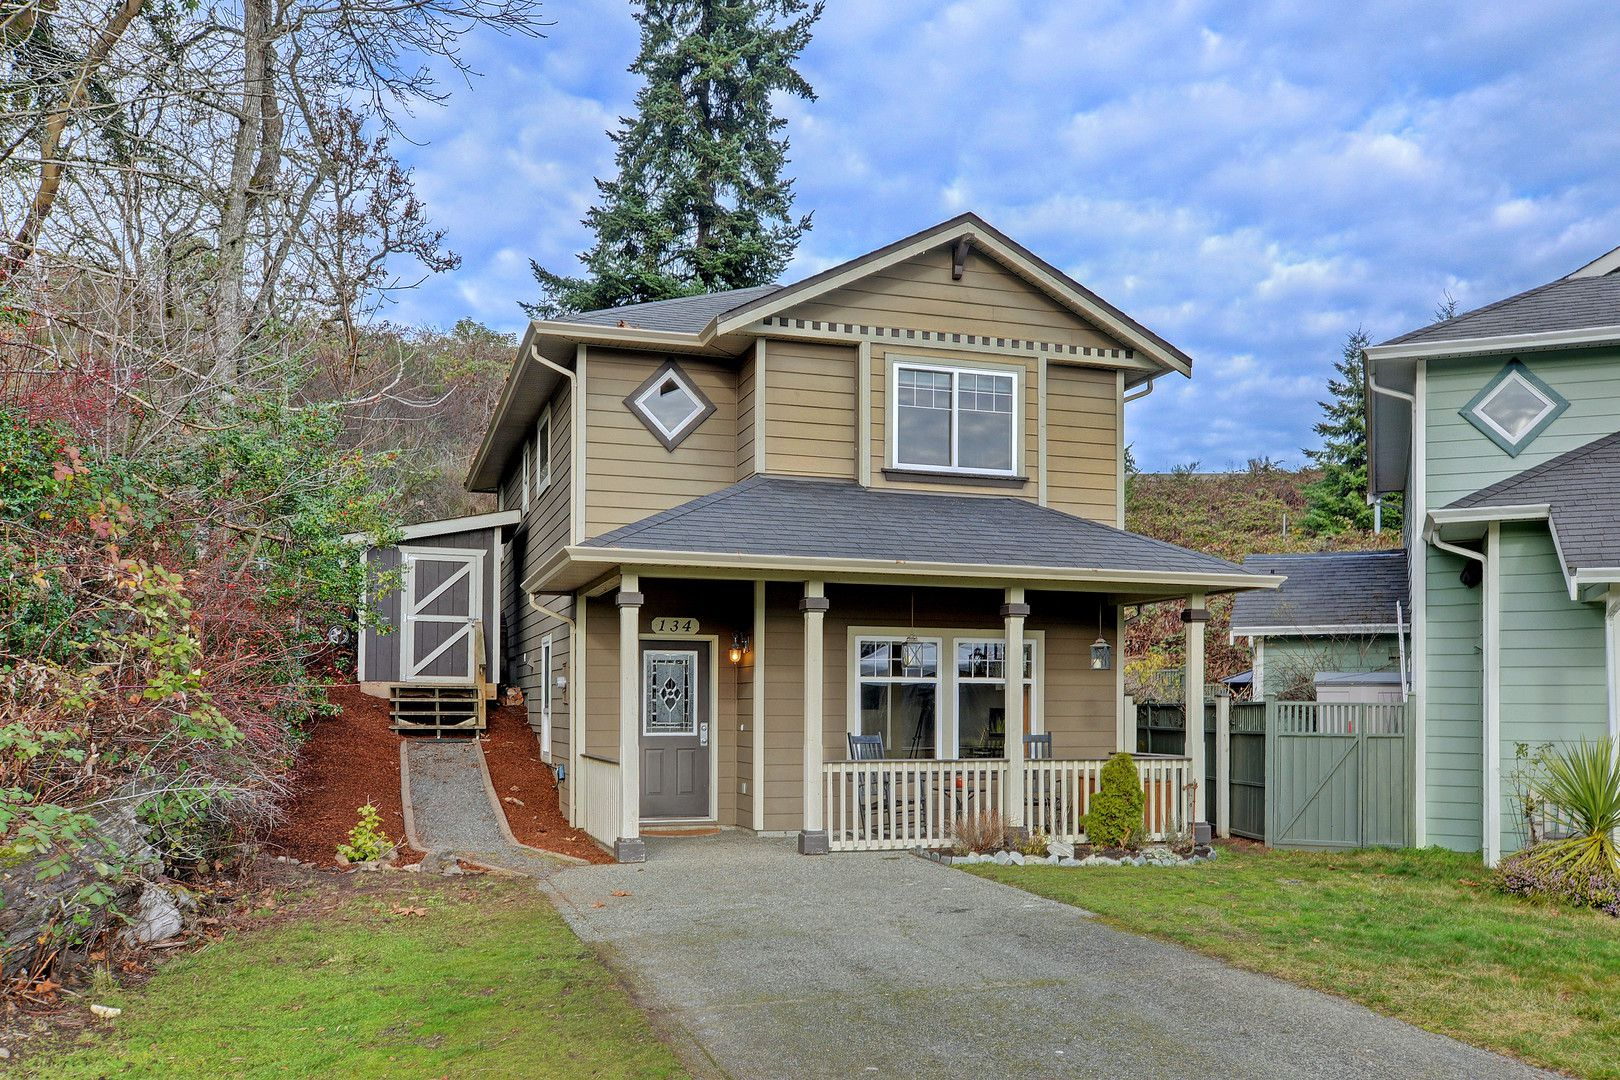 Main Photo: 134 Thetis Vale Crescent in VICTORIA: VR Six Mile Single Family Detached for sale (View Royal)  : MLS®# 386180